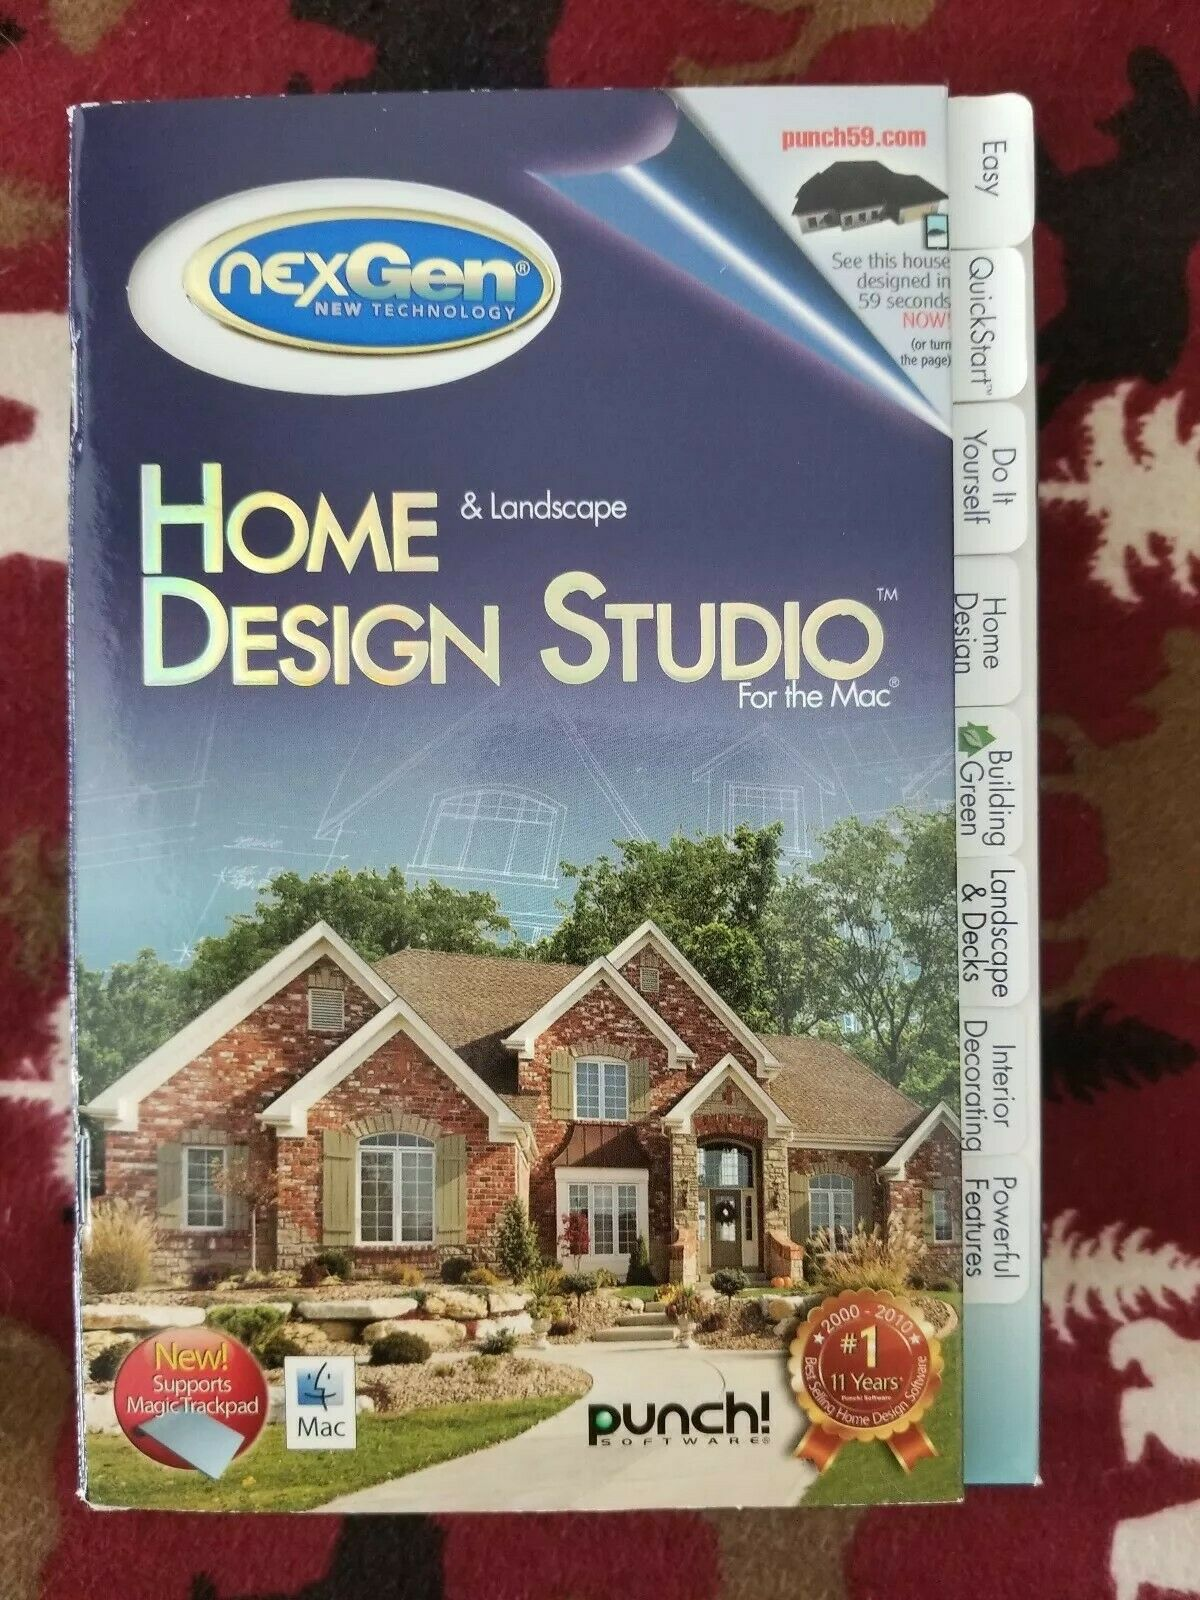 Punch! Home and Landscape Design Studio for the Mac (2010) - Brand new, Sealed. 10